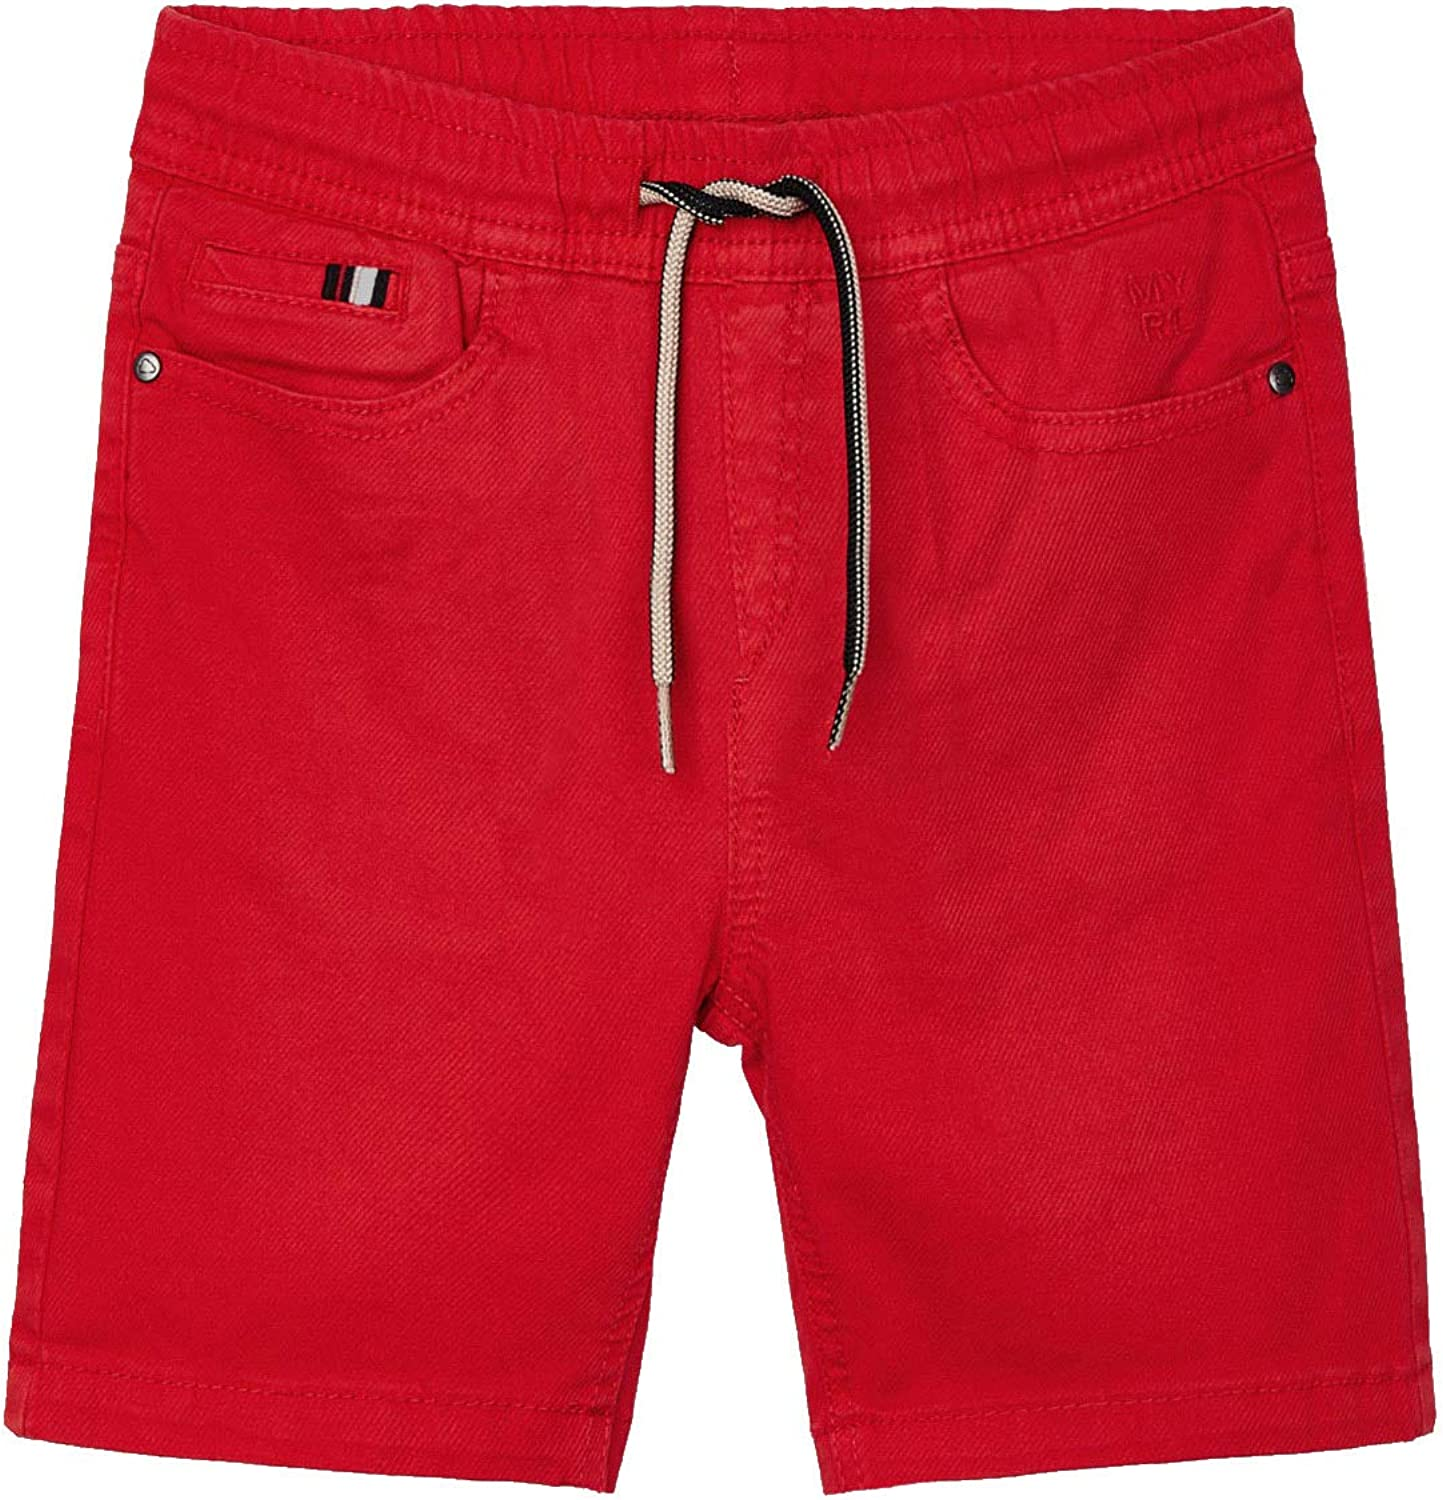 Mayoral - Short for Max 54% OFF Lowest price challenge Red Boys 3238